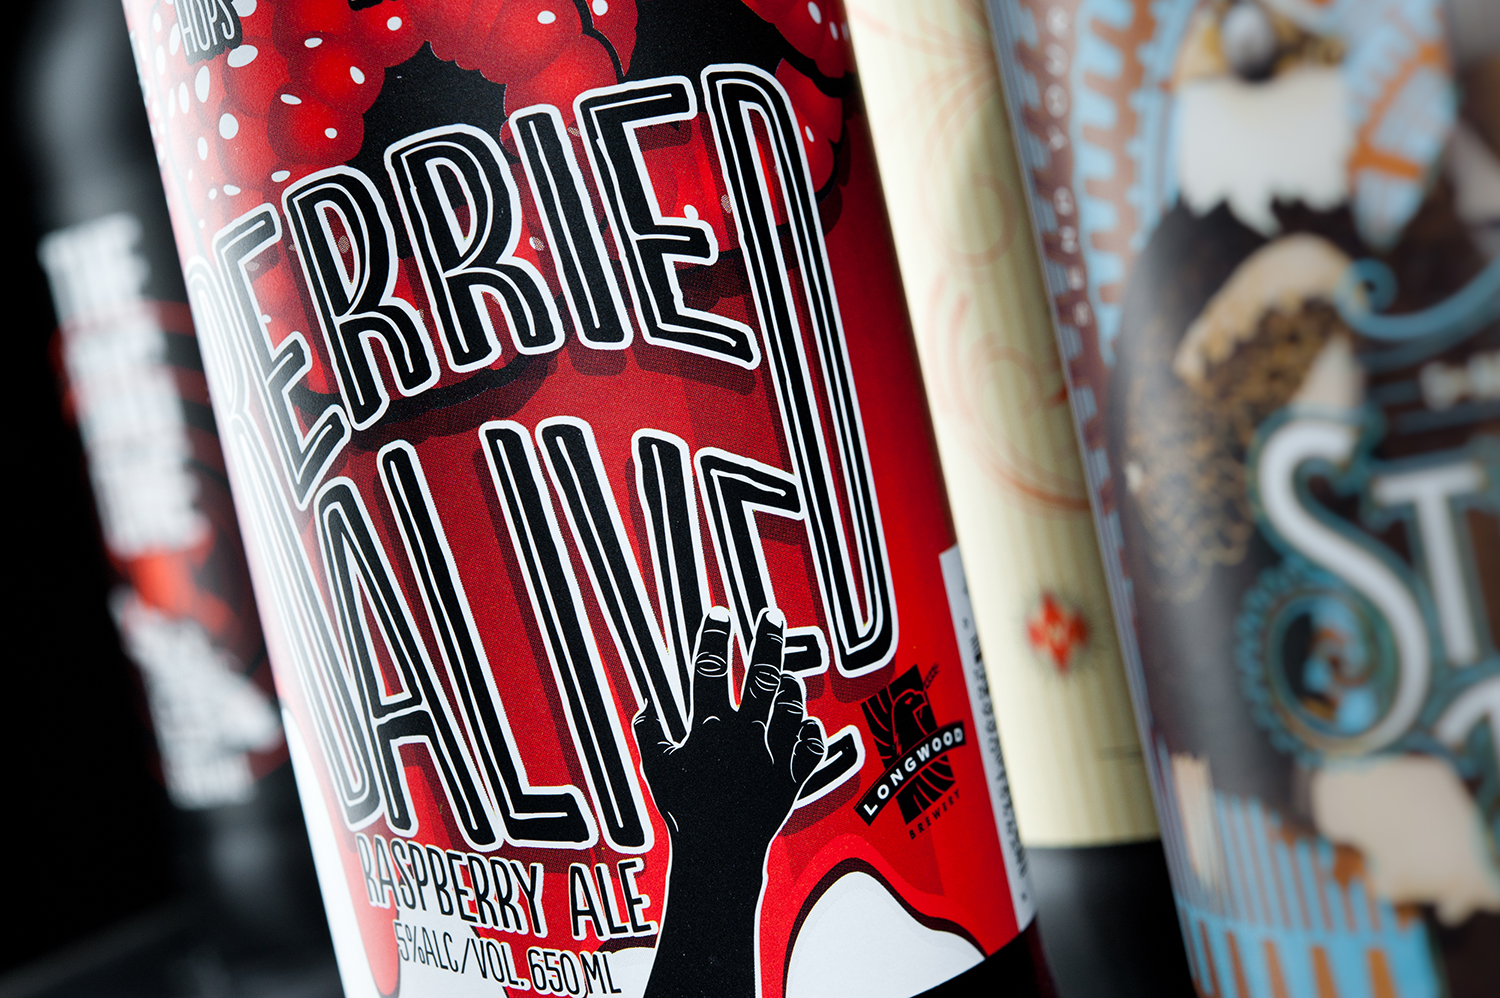 Packaging Design for Longwood Brewery's Berried Alive Raspberry Ale